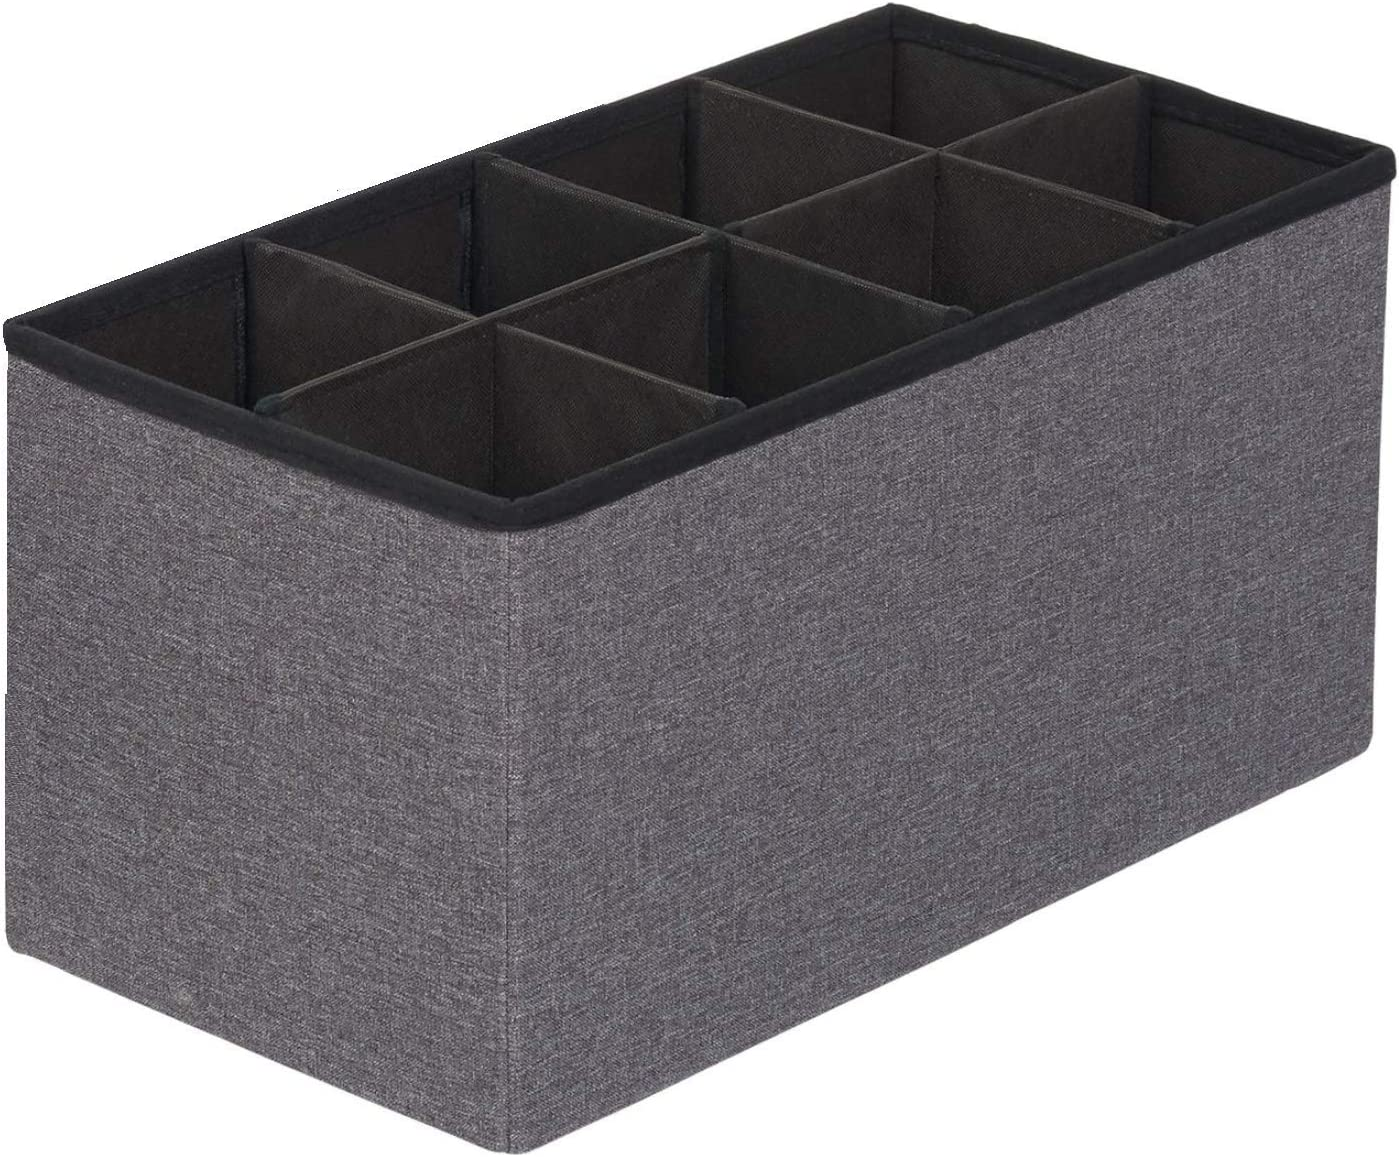 Fresh Home Elements BLOX Direct store Additional organization Closet Free shipping on posting reviews storage